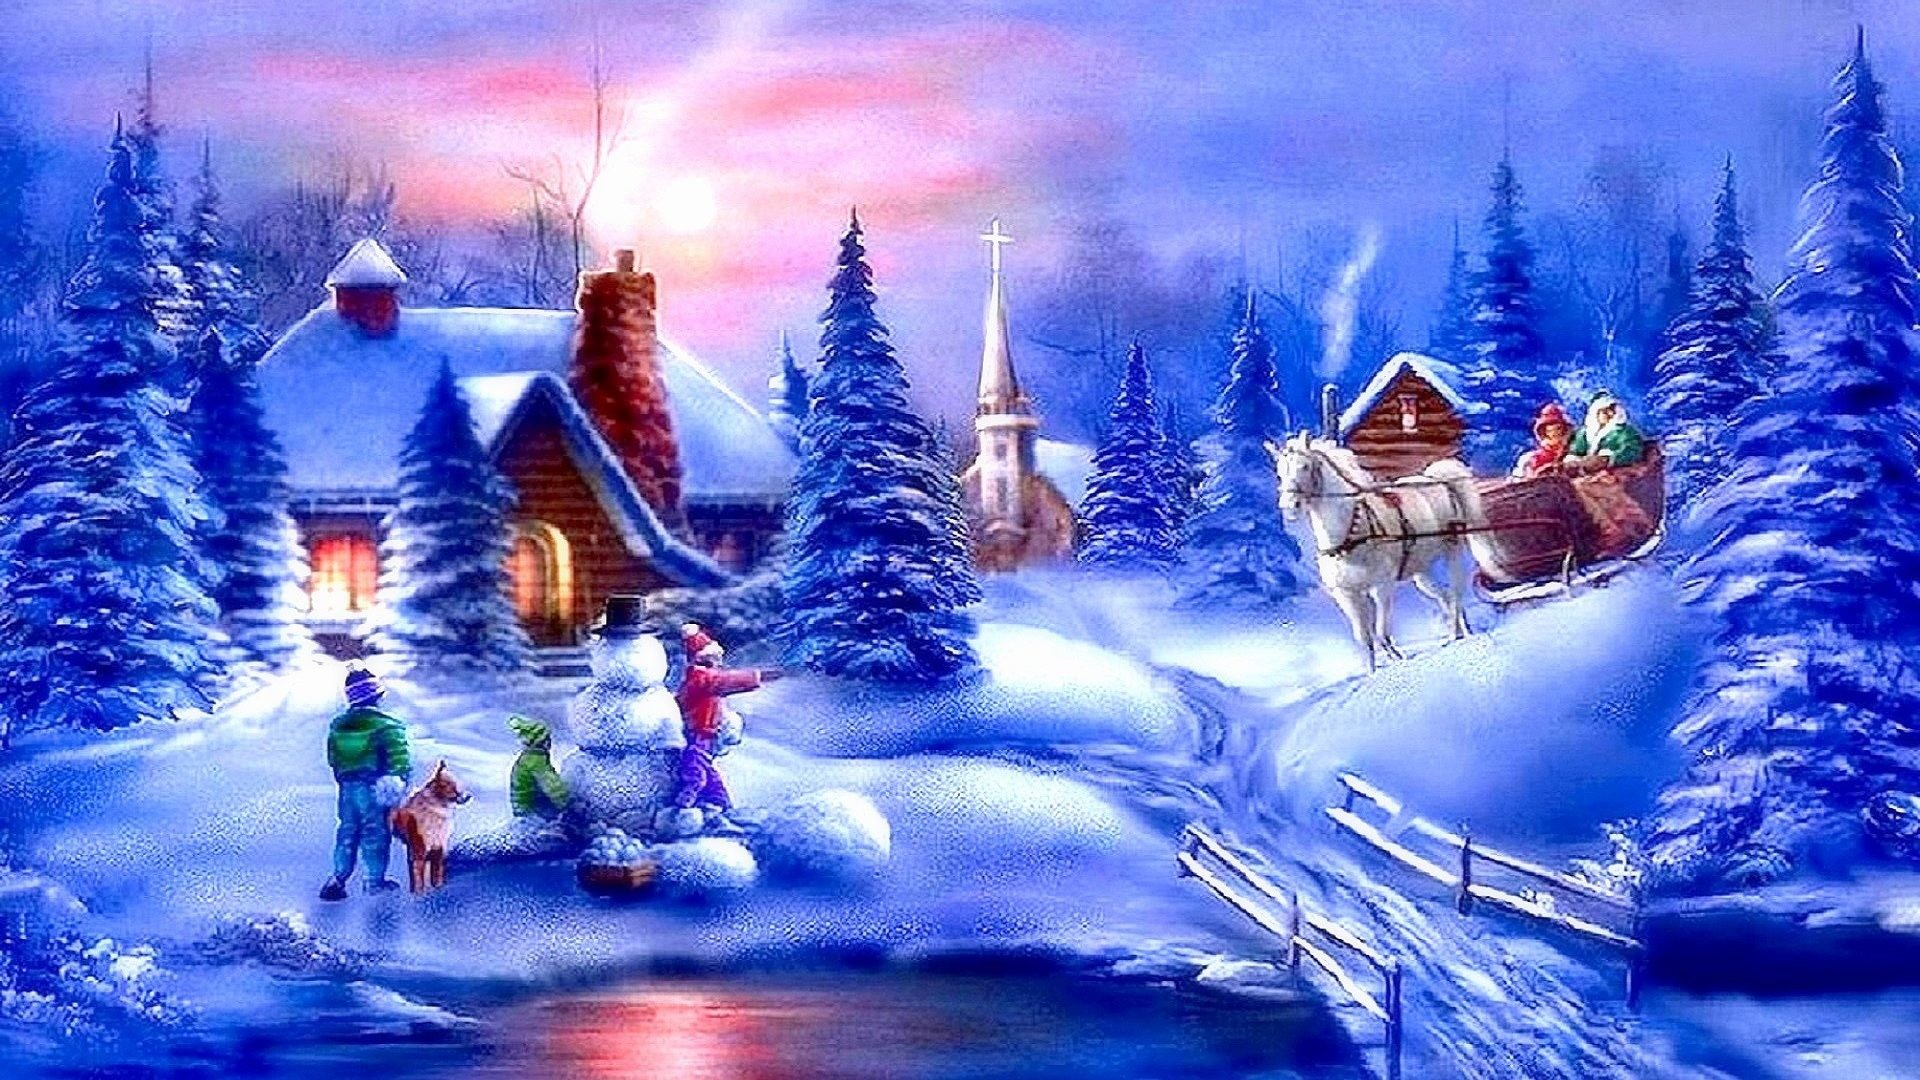 Christmas scene backgrounds 40 images 1920x1200 free desktop christmas wallpaper desktop christmas wallpaper free for background download voltagebd Images